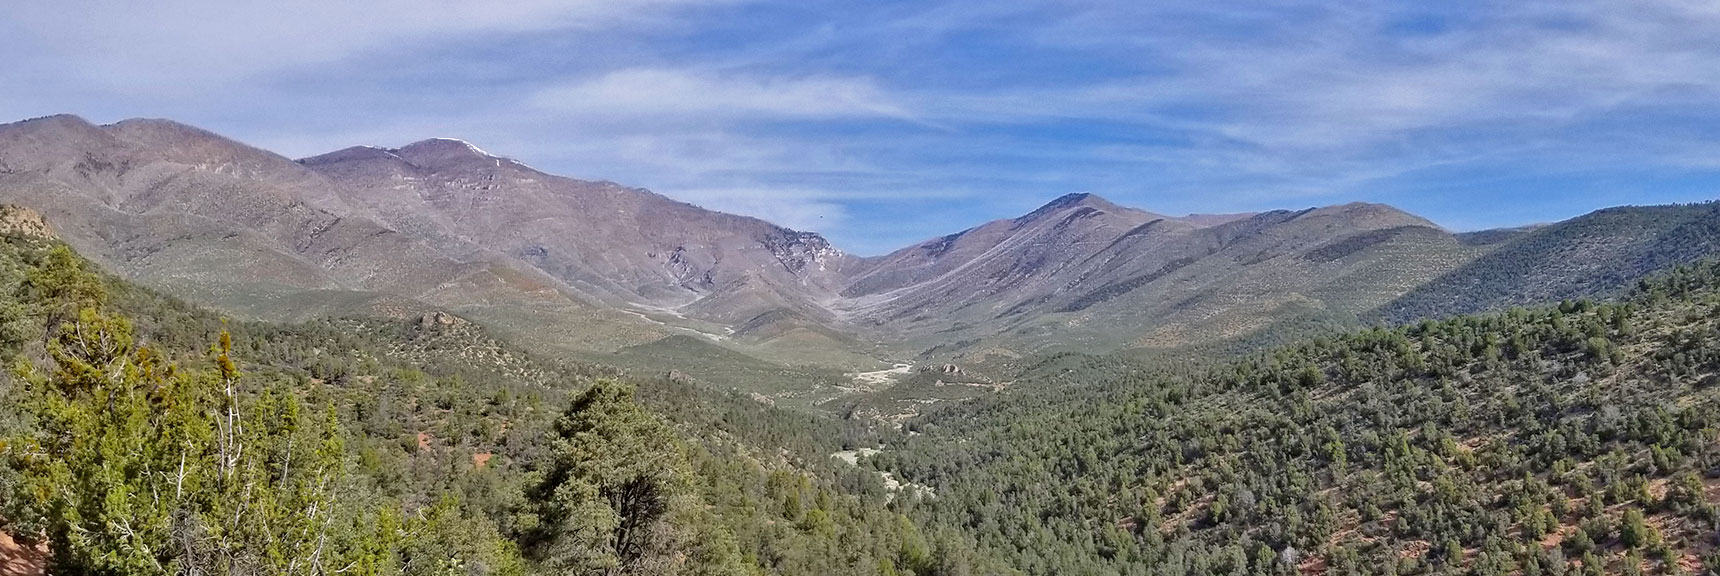 View of Griffith Peak, Harris Mountain and Saddle from Lovell Canyon Trail, La Madre Mountains Wilderness, Nevada